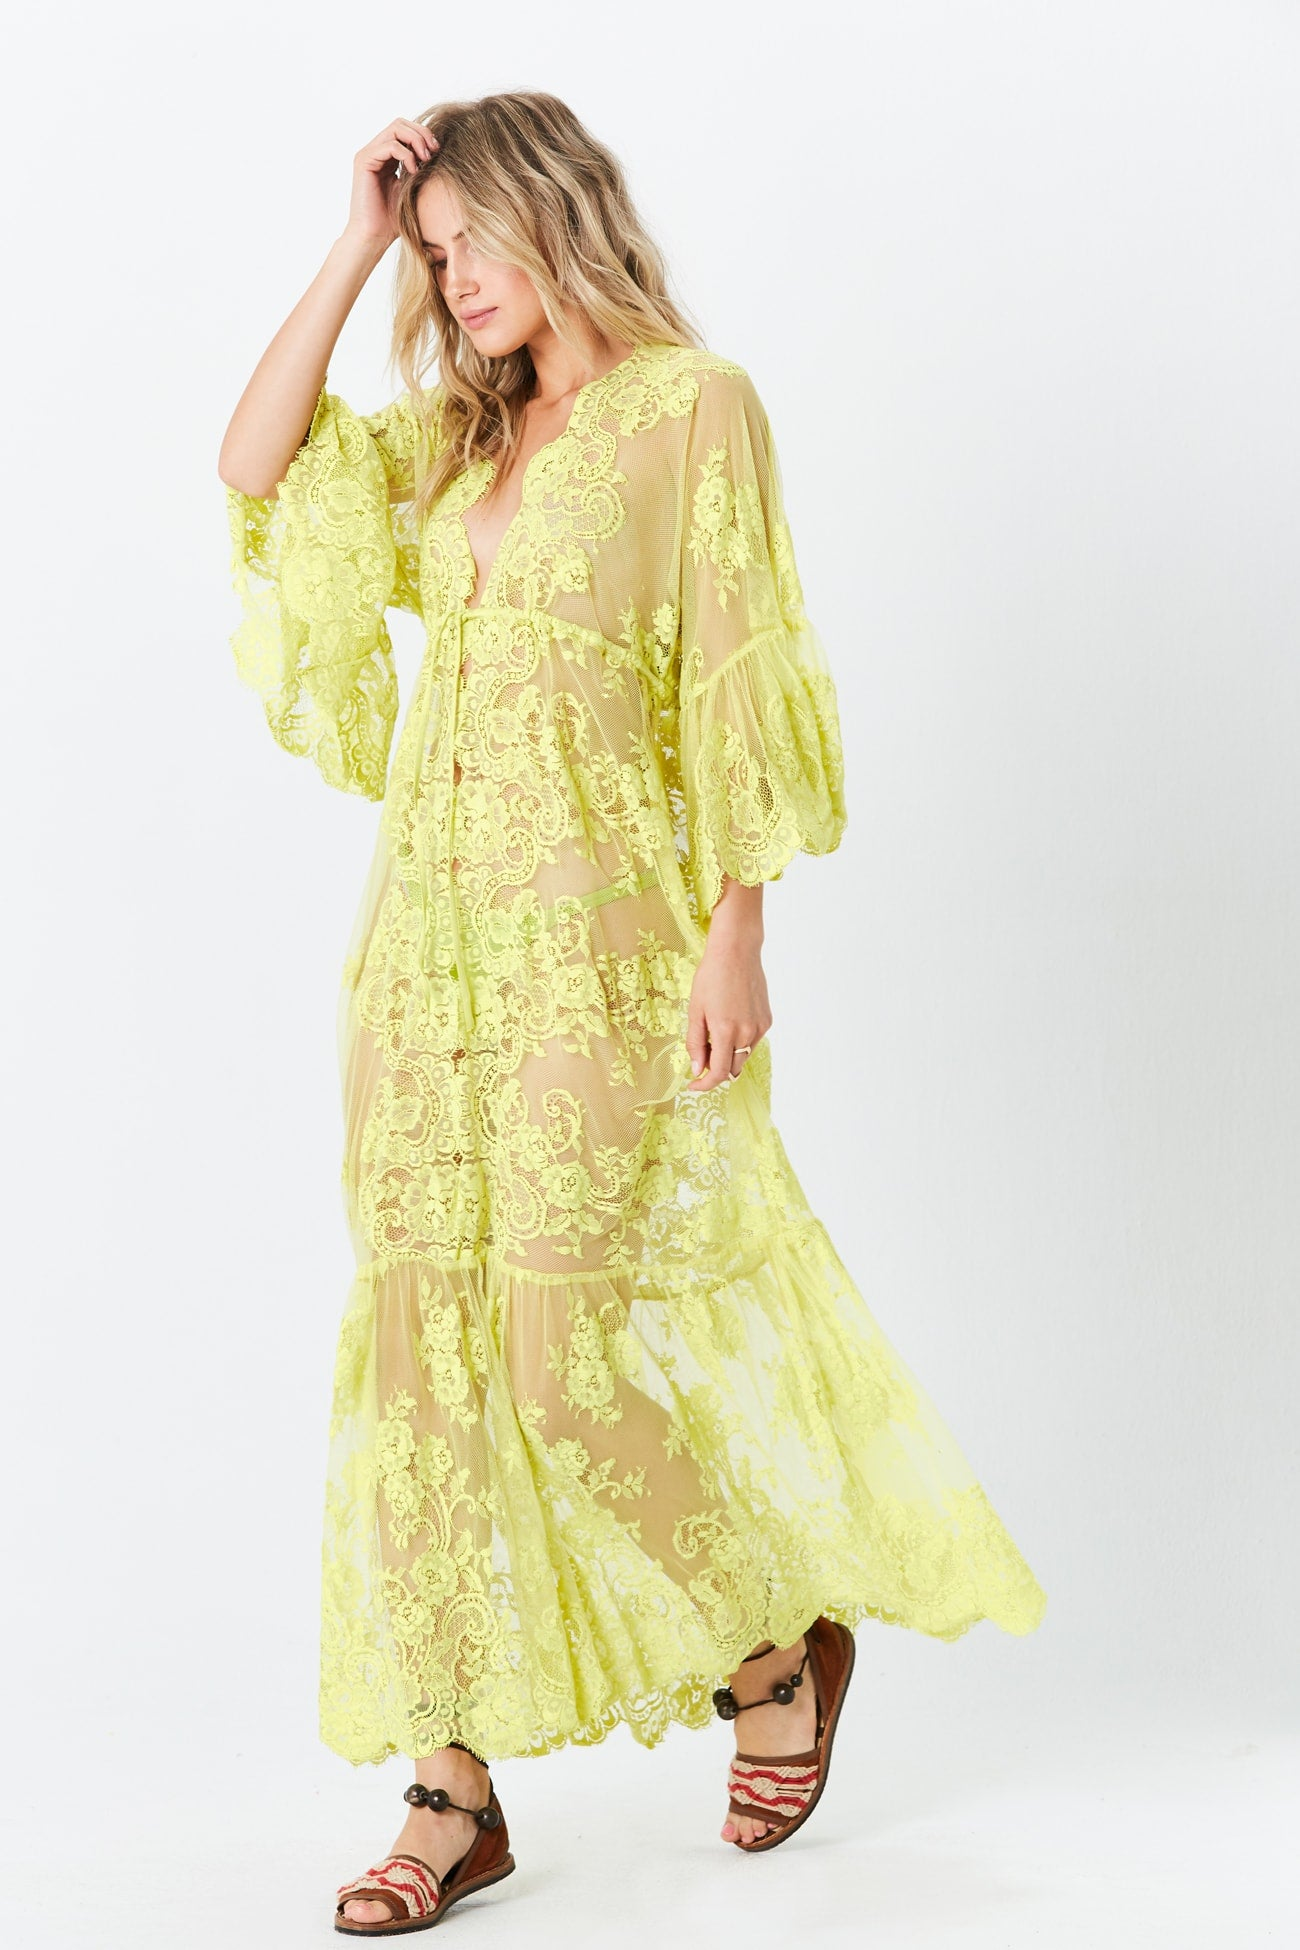 fc4672b529 Key Lime Ethereal Lace · Ethereal Black Orchid Maxi Dress ...